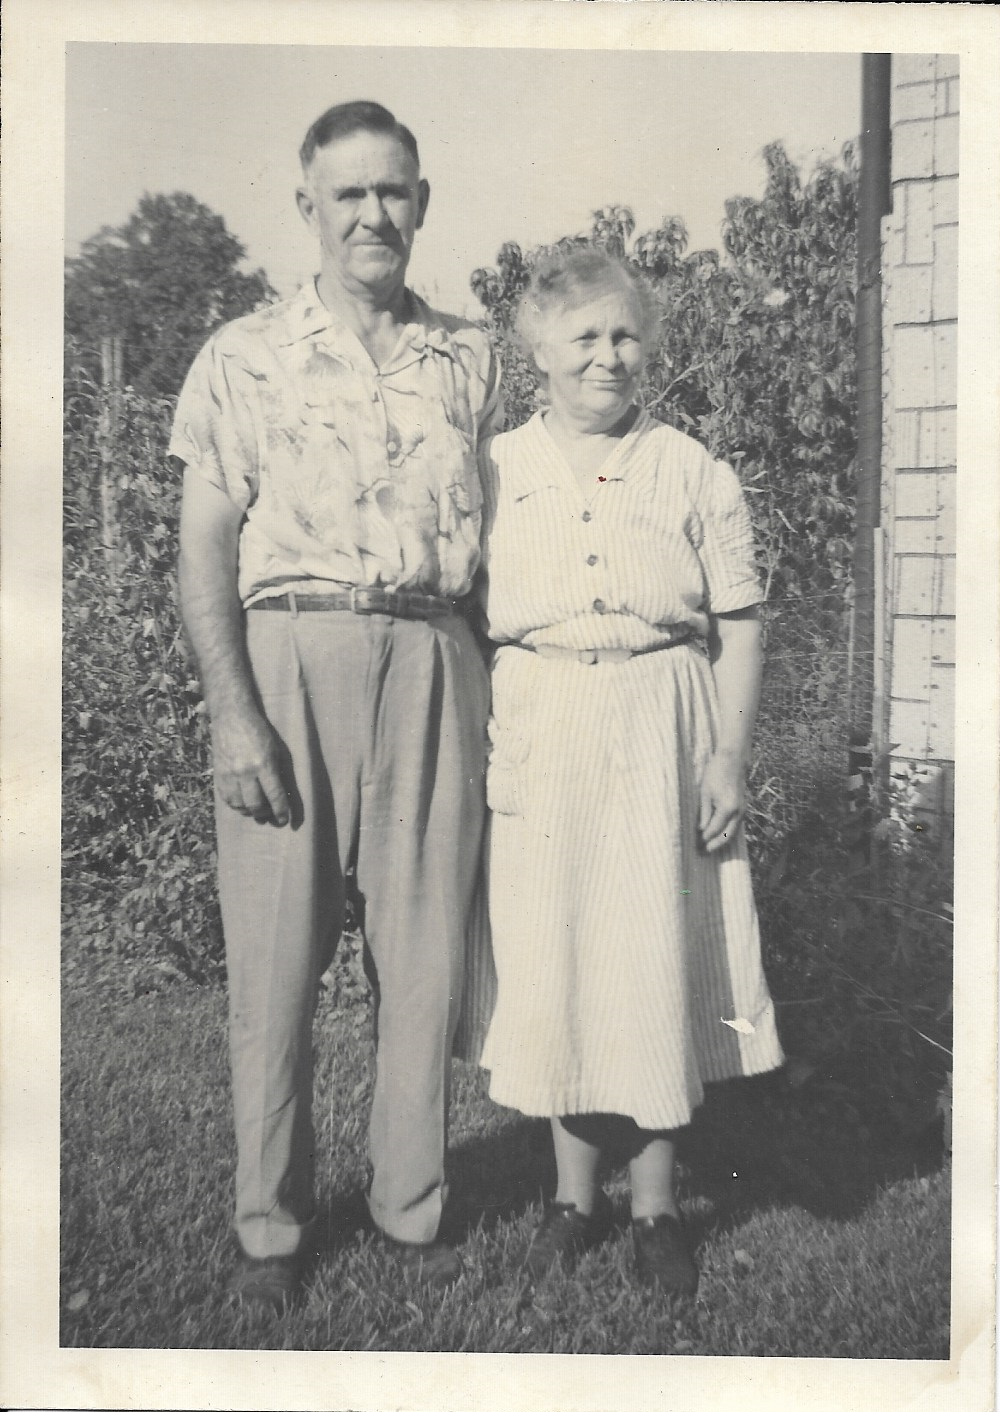 My great-grandmother Idella with her husband Harold